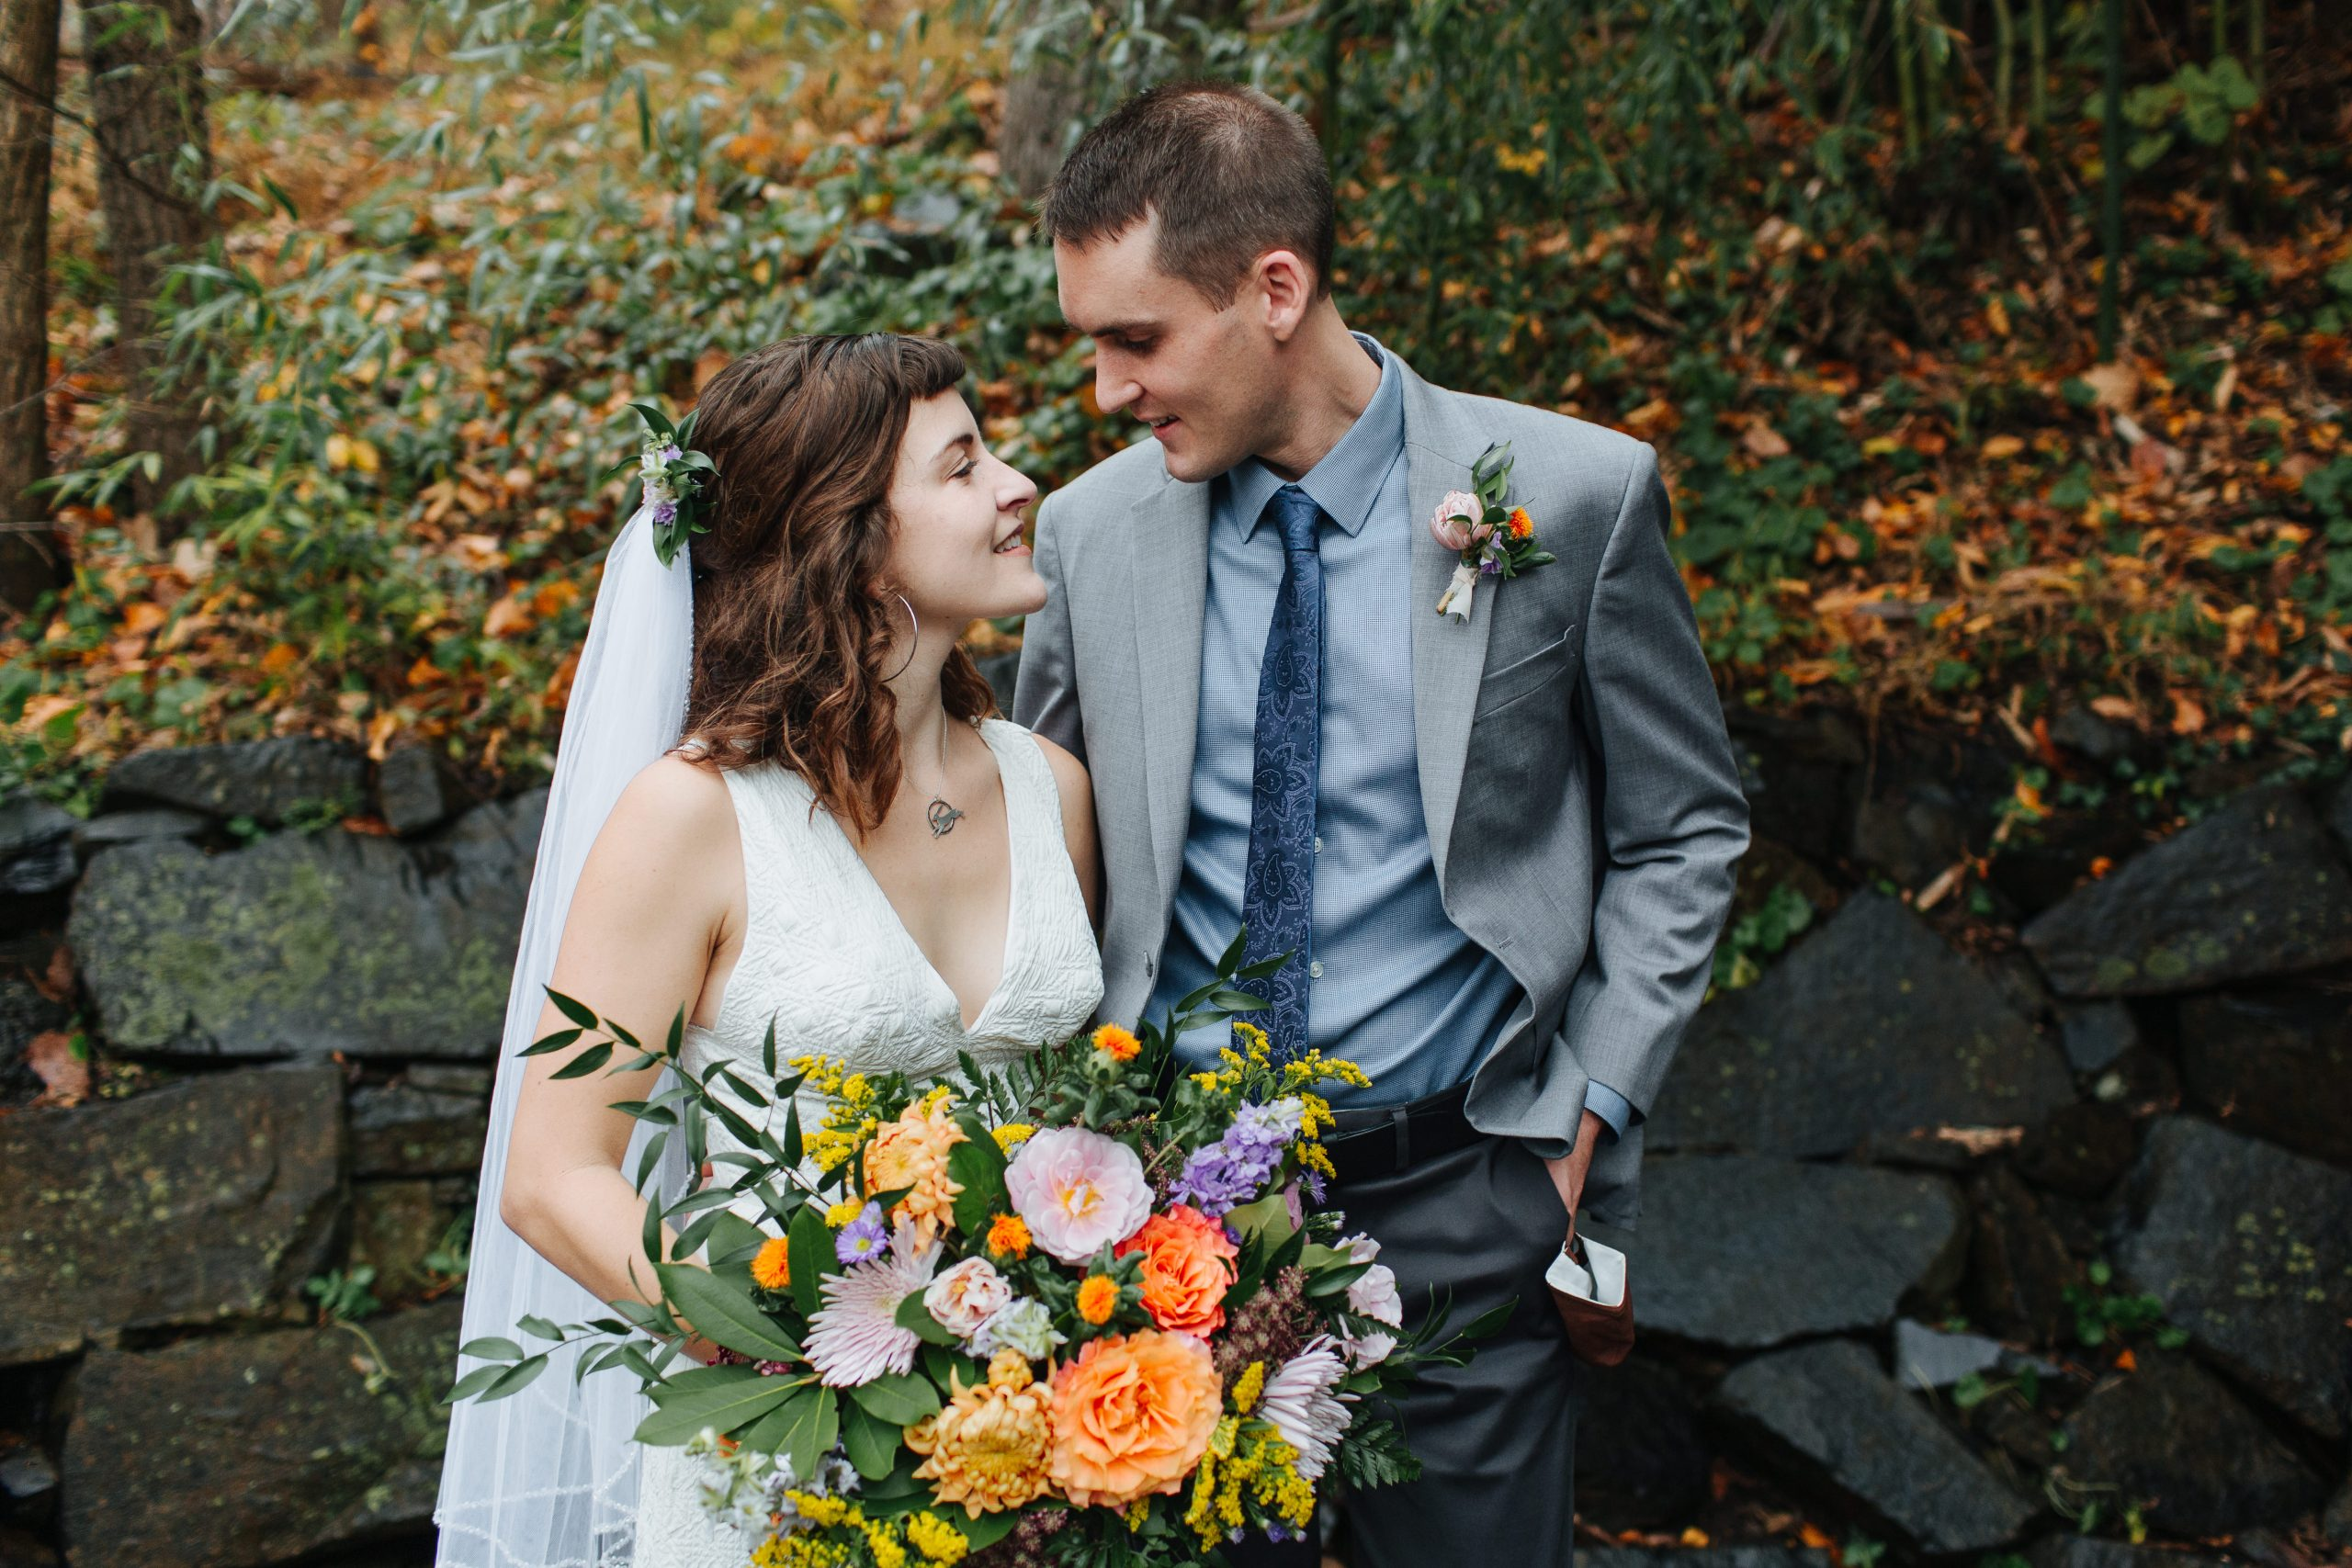 Caucasian couple looking at one another after self uniting in a micro wedding in Bucks County, PA. The bride has a white jumpsuit on, a short veil on her brown hair decorated with orange and purple flowers. The groom has on a grey suit coat and blue tie.